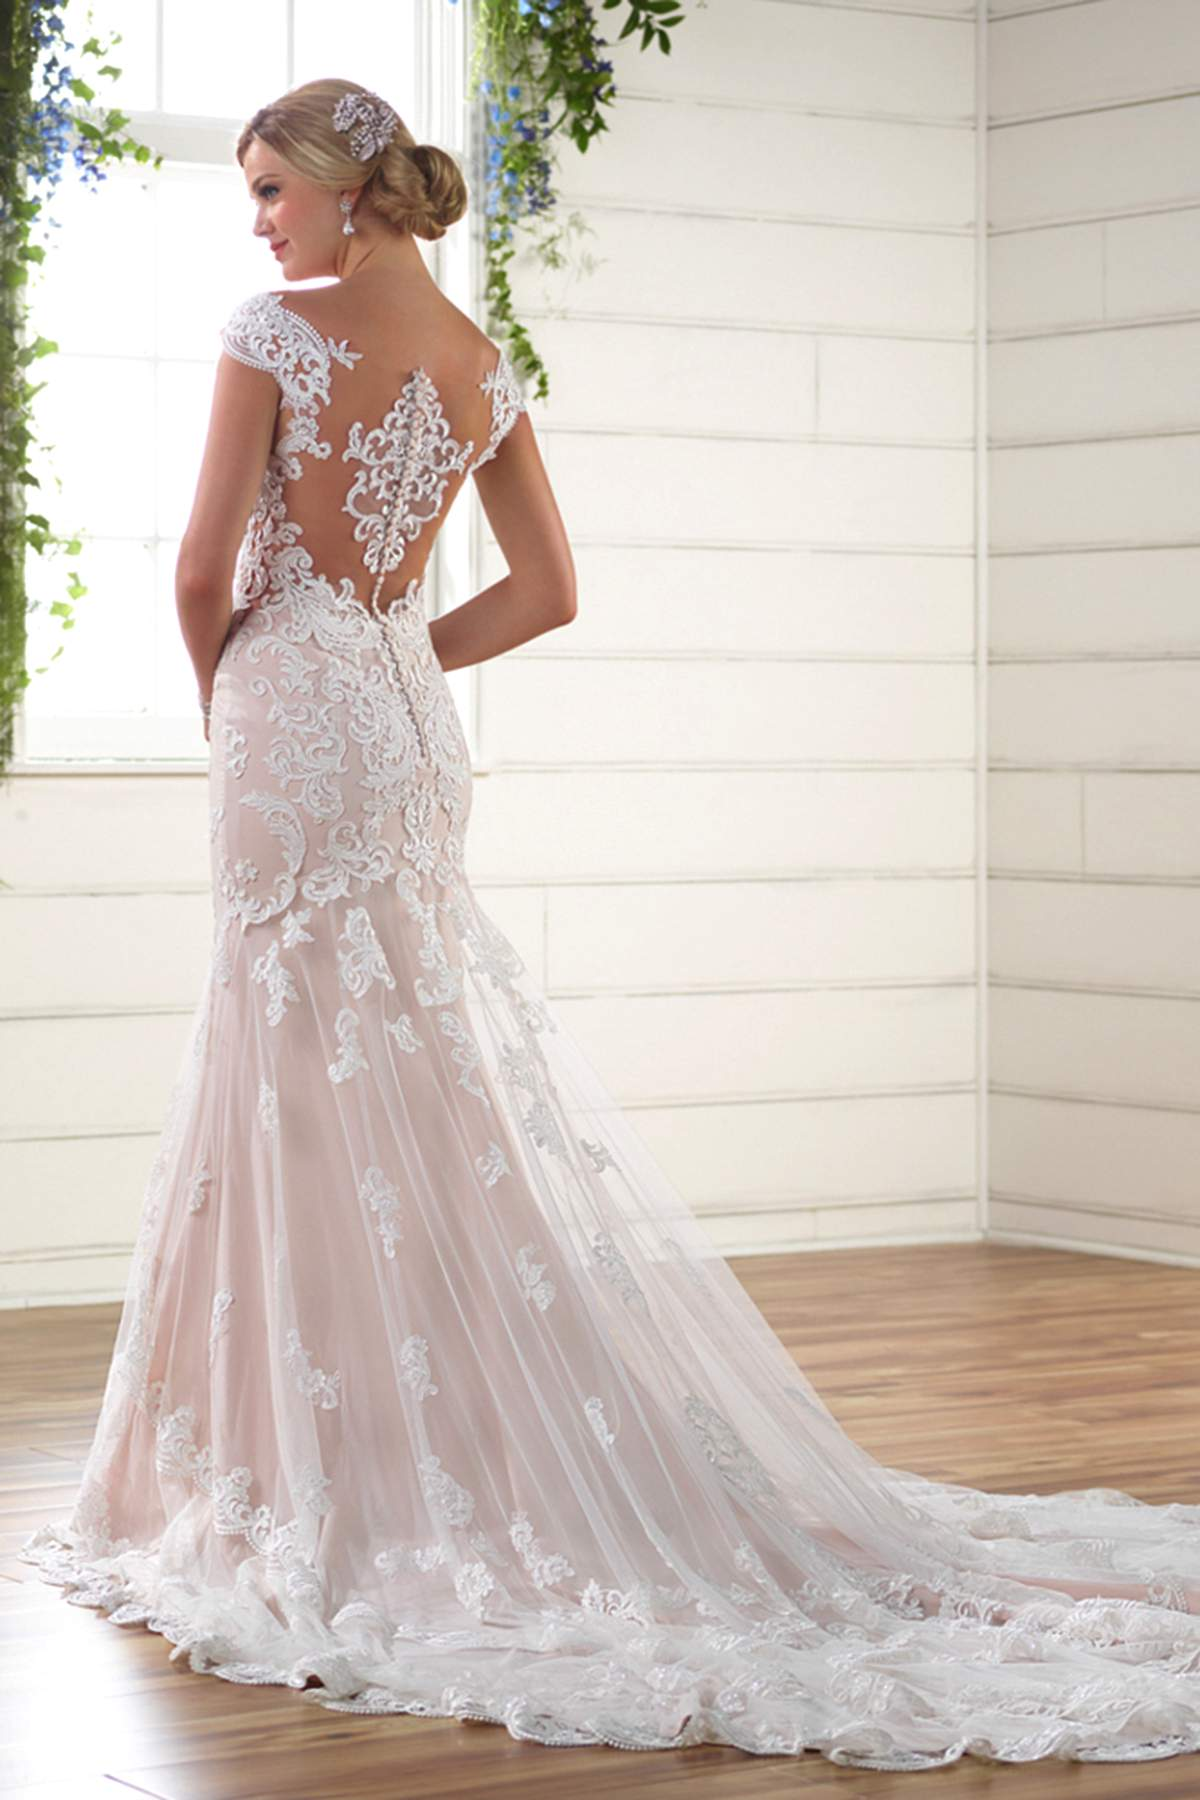 Style d2205 by essense of australia find your dream dress for Essense of australia wedding dress cost